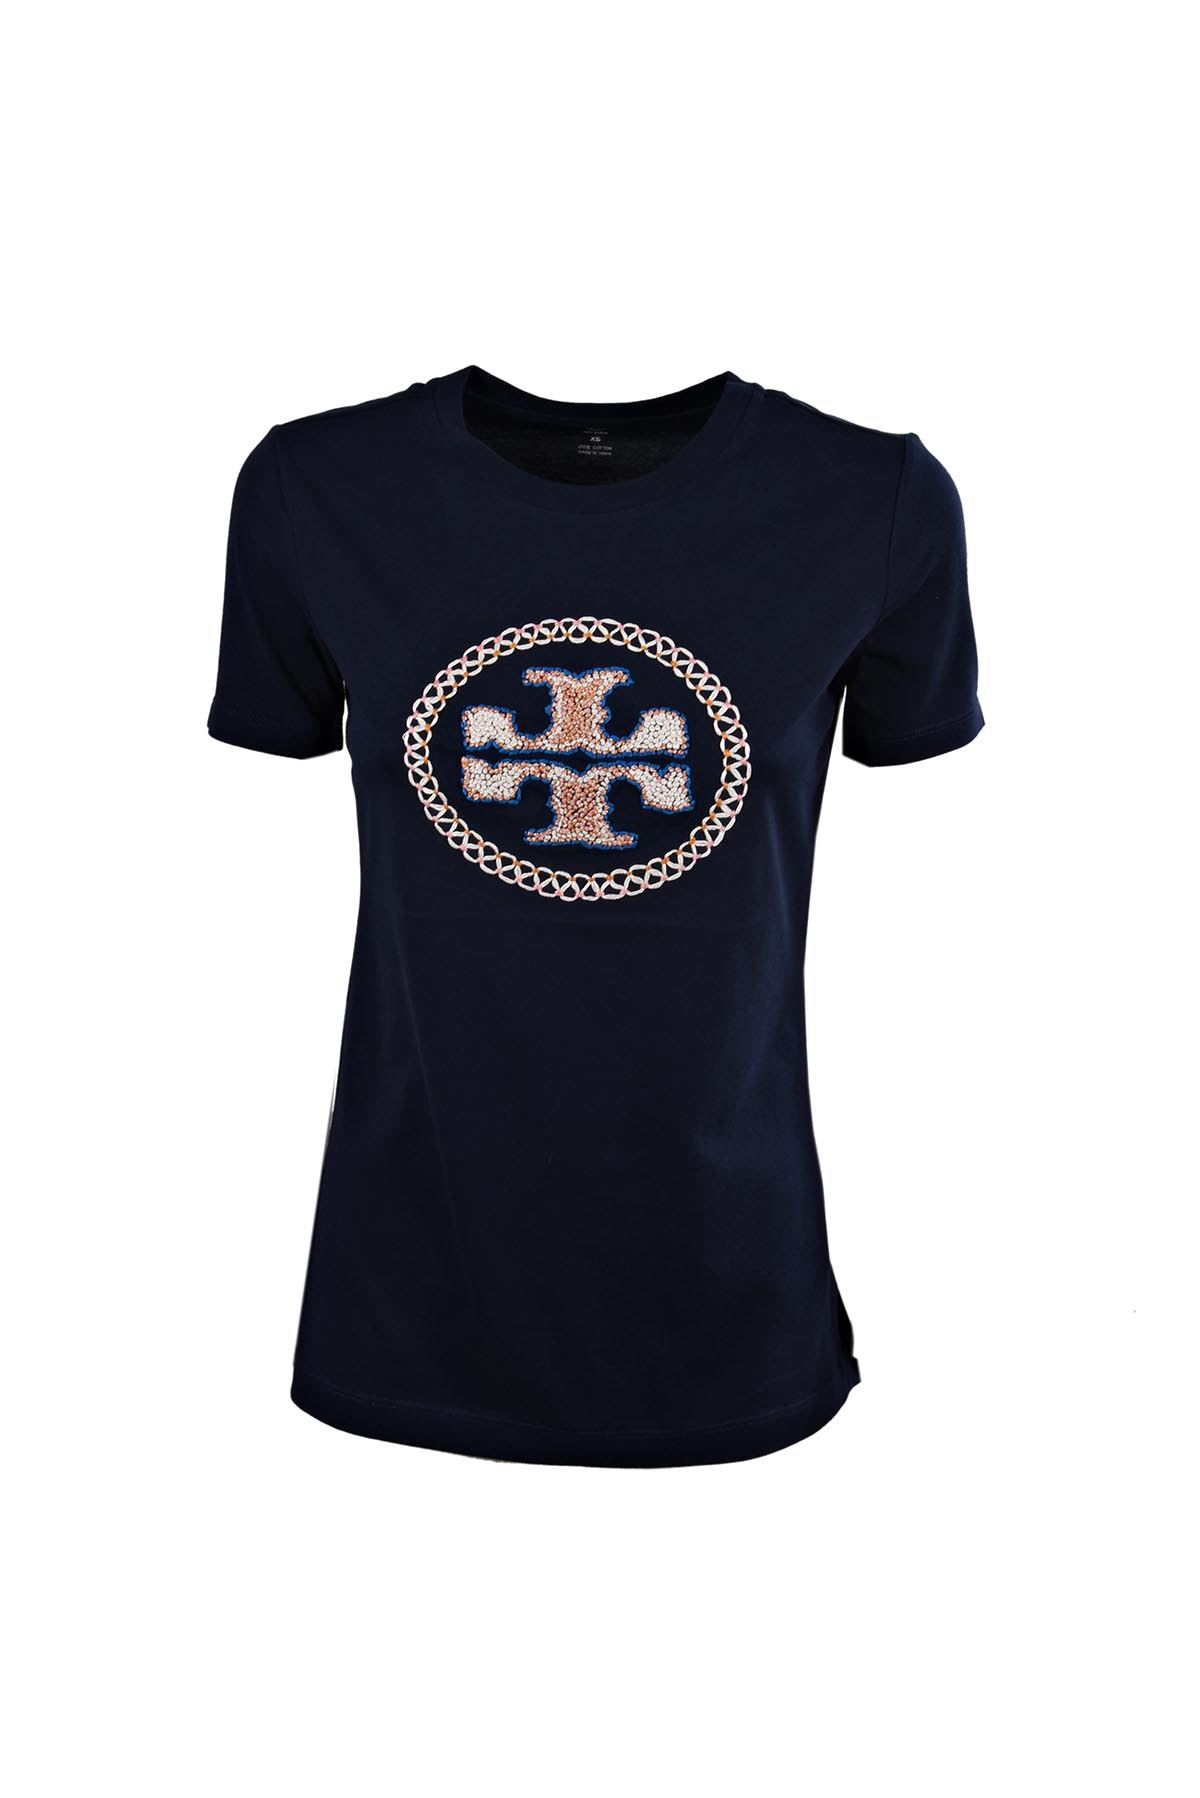 Tory Burch Maya T-shirt